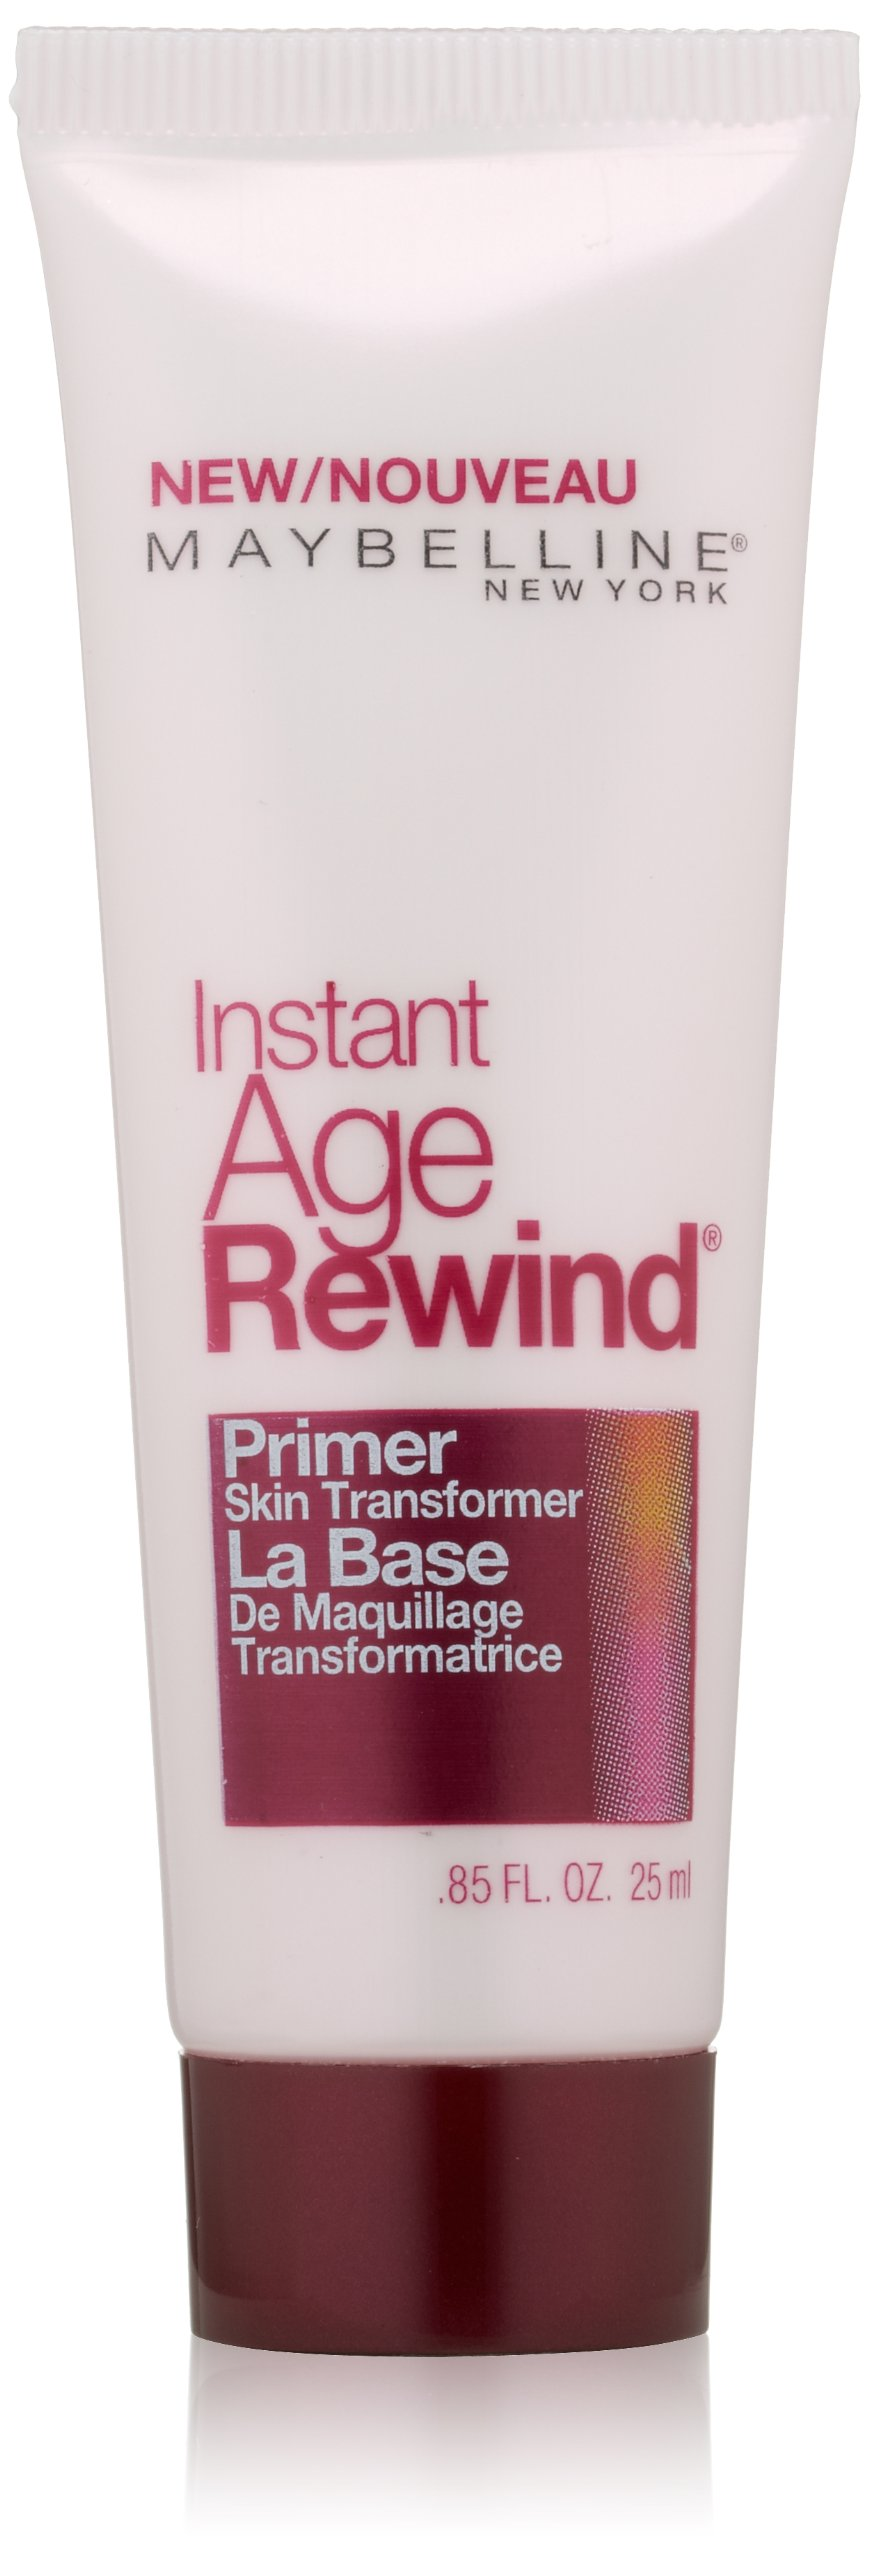 Maybelline New York Instant Age Rewind Primer Skin Transformer, Clear, 0.85 Fluid Ounce